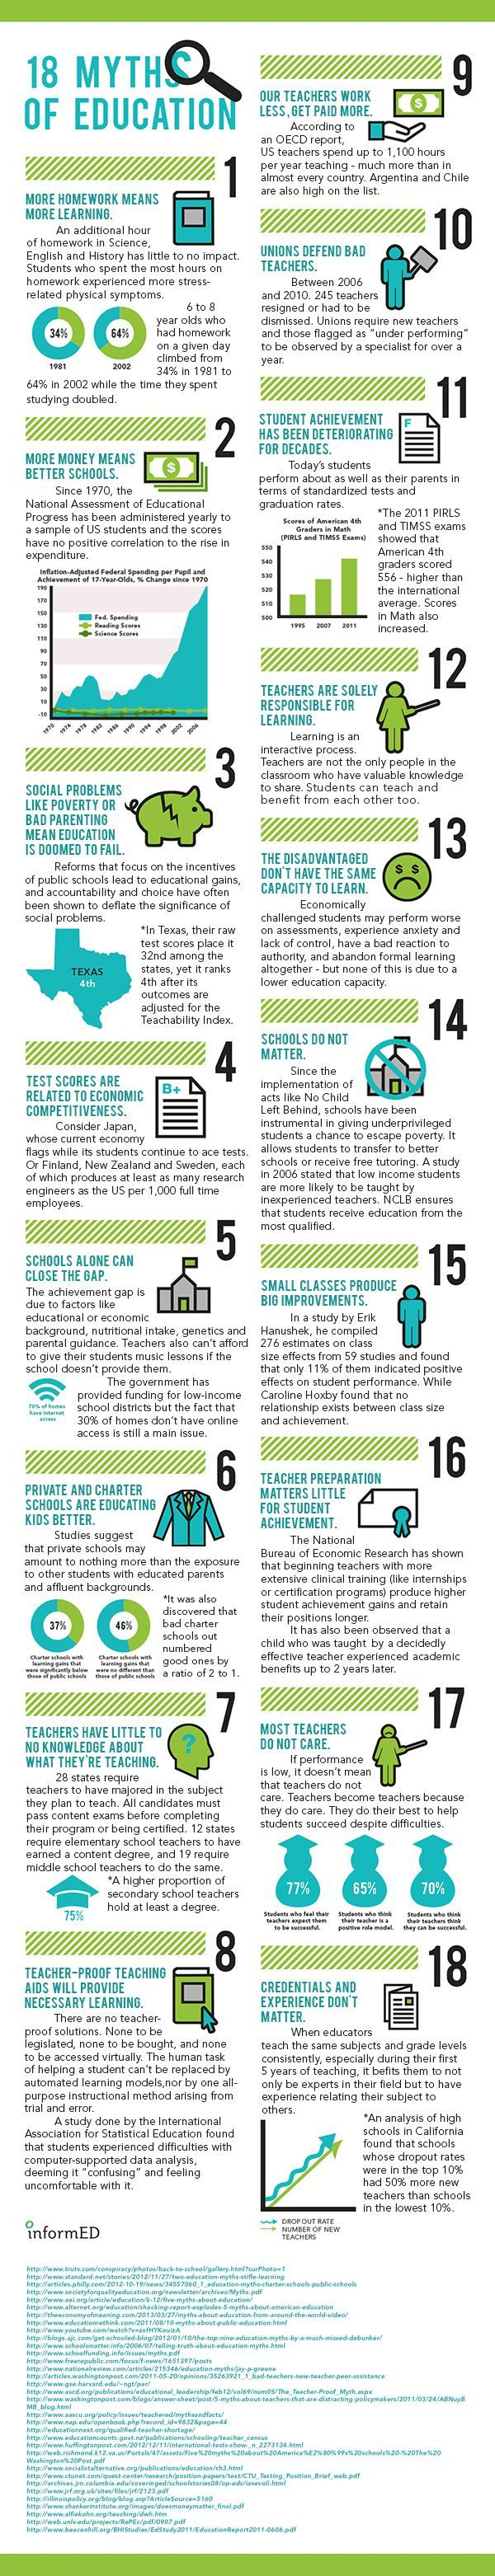 18-Myths-of-Education-Infographic